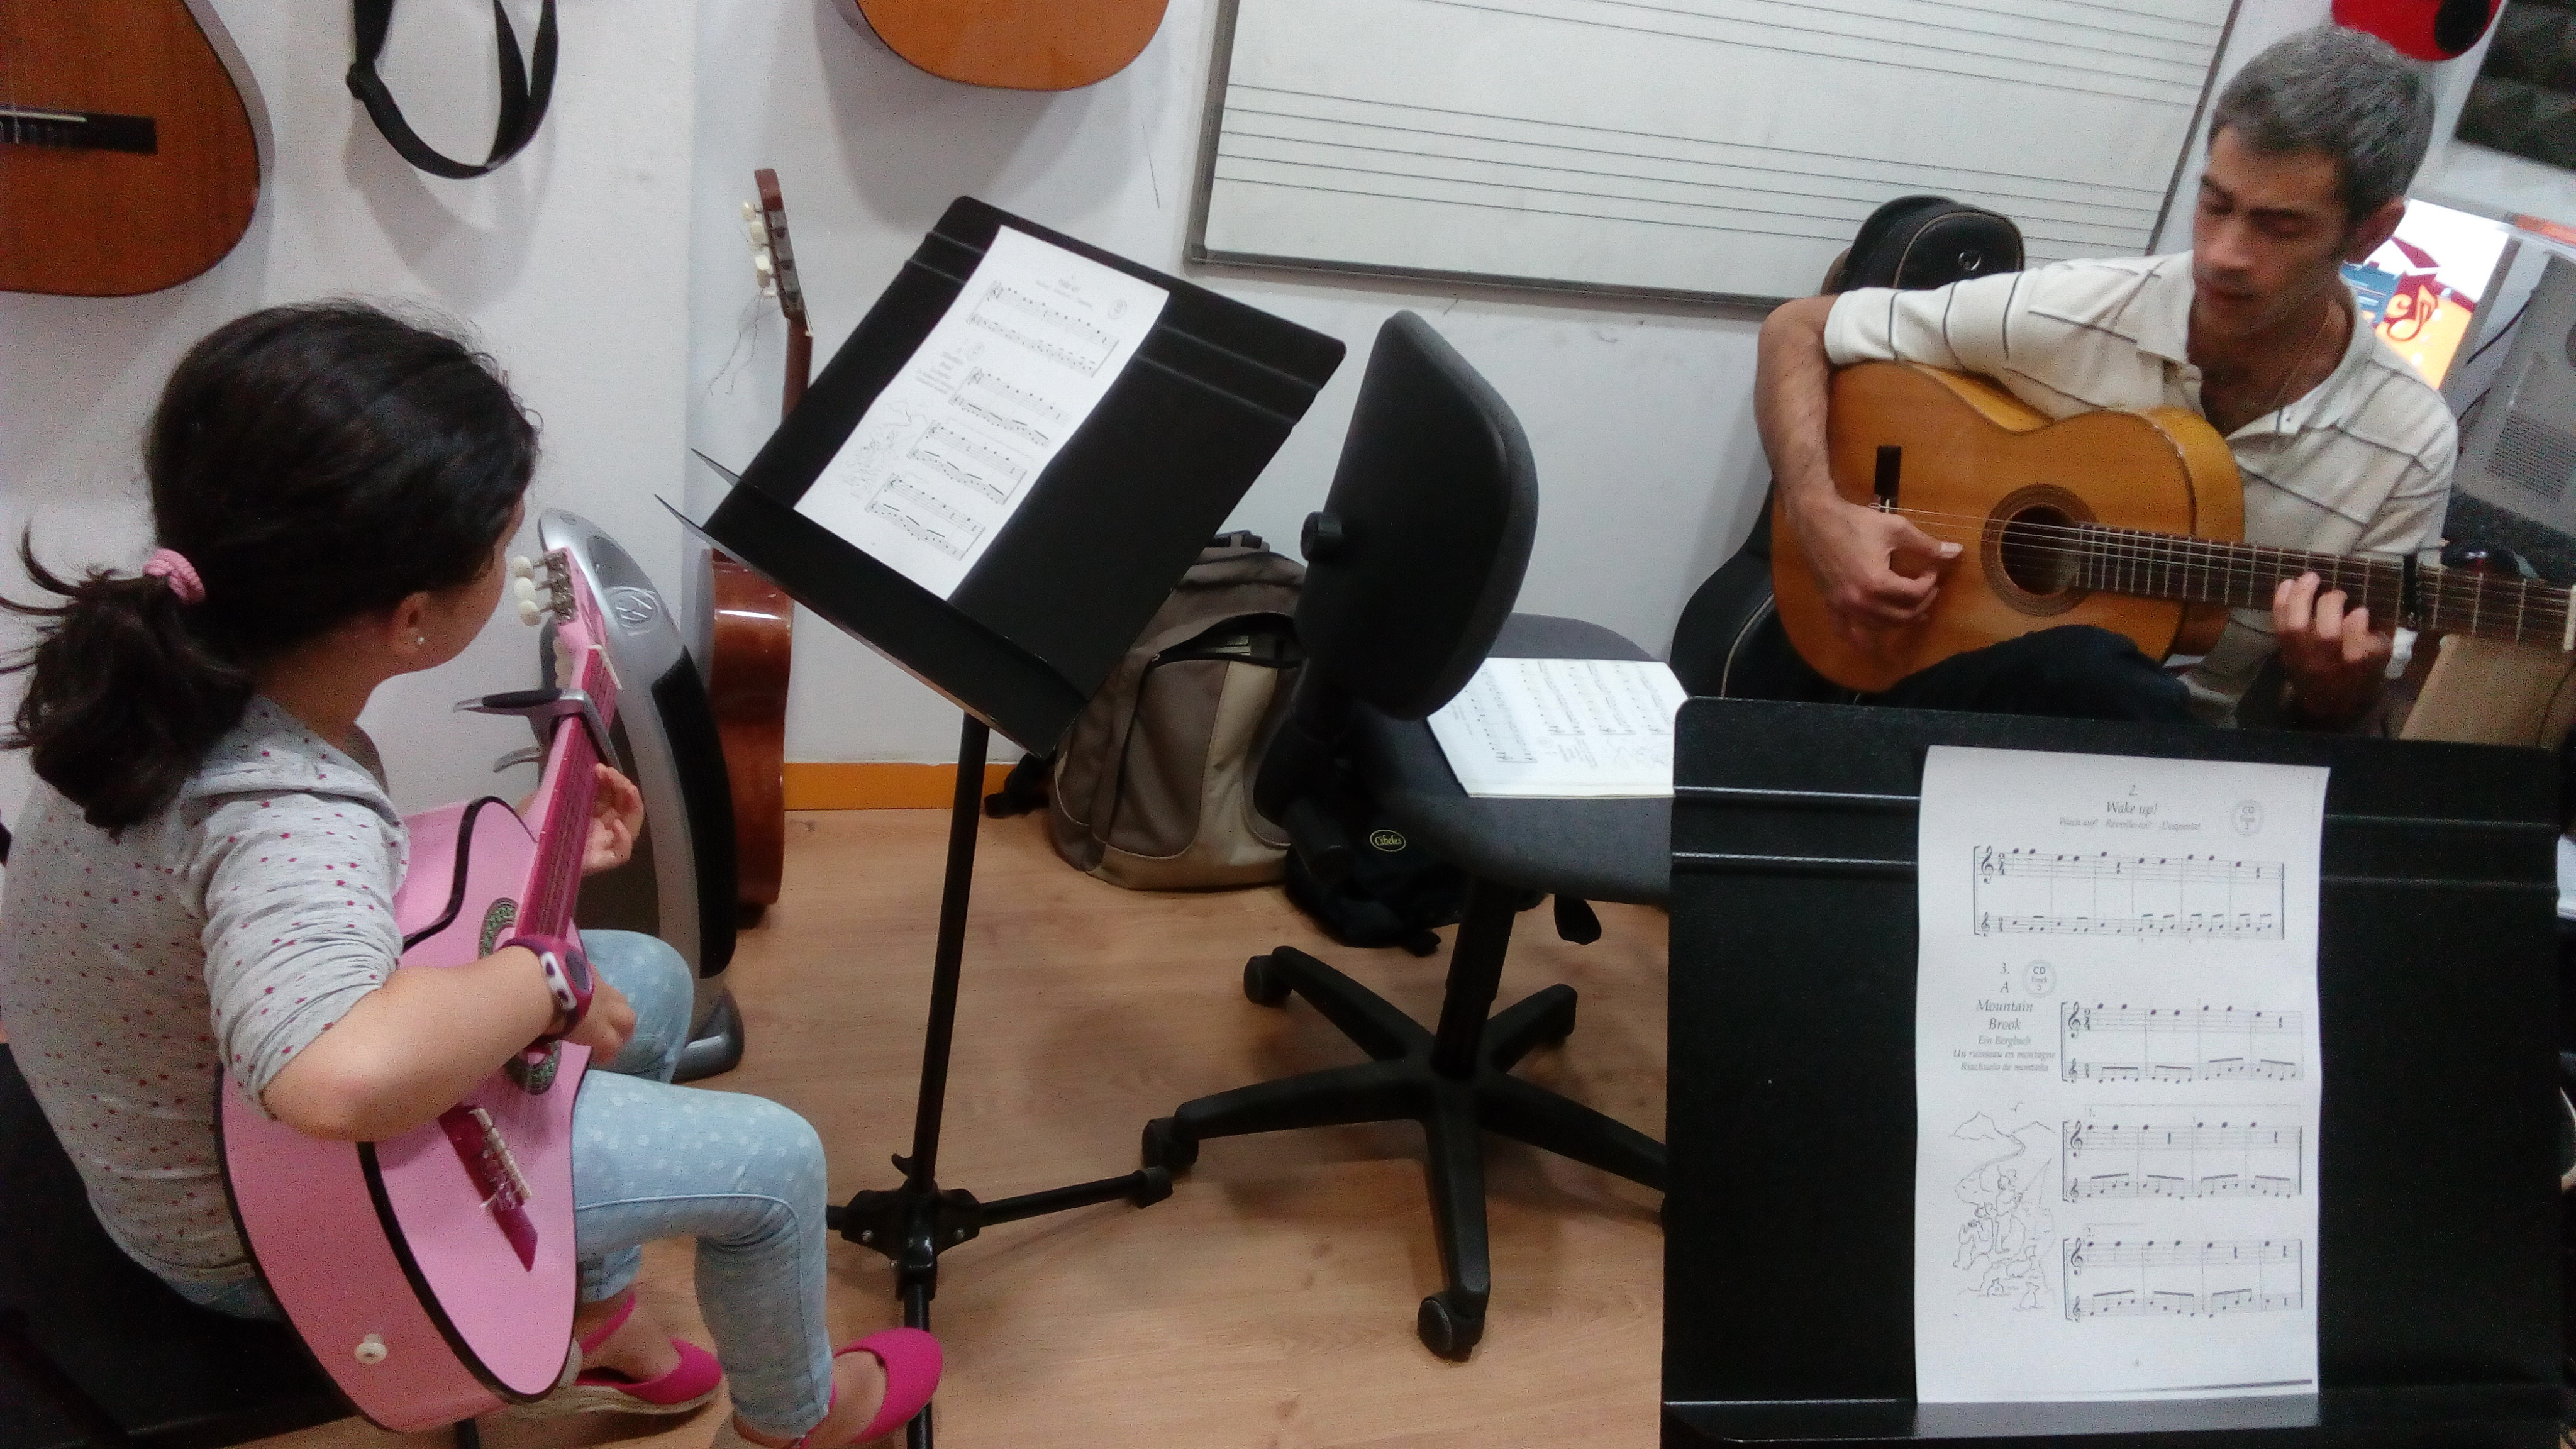 Clases de Guitarra The Music House